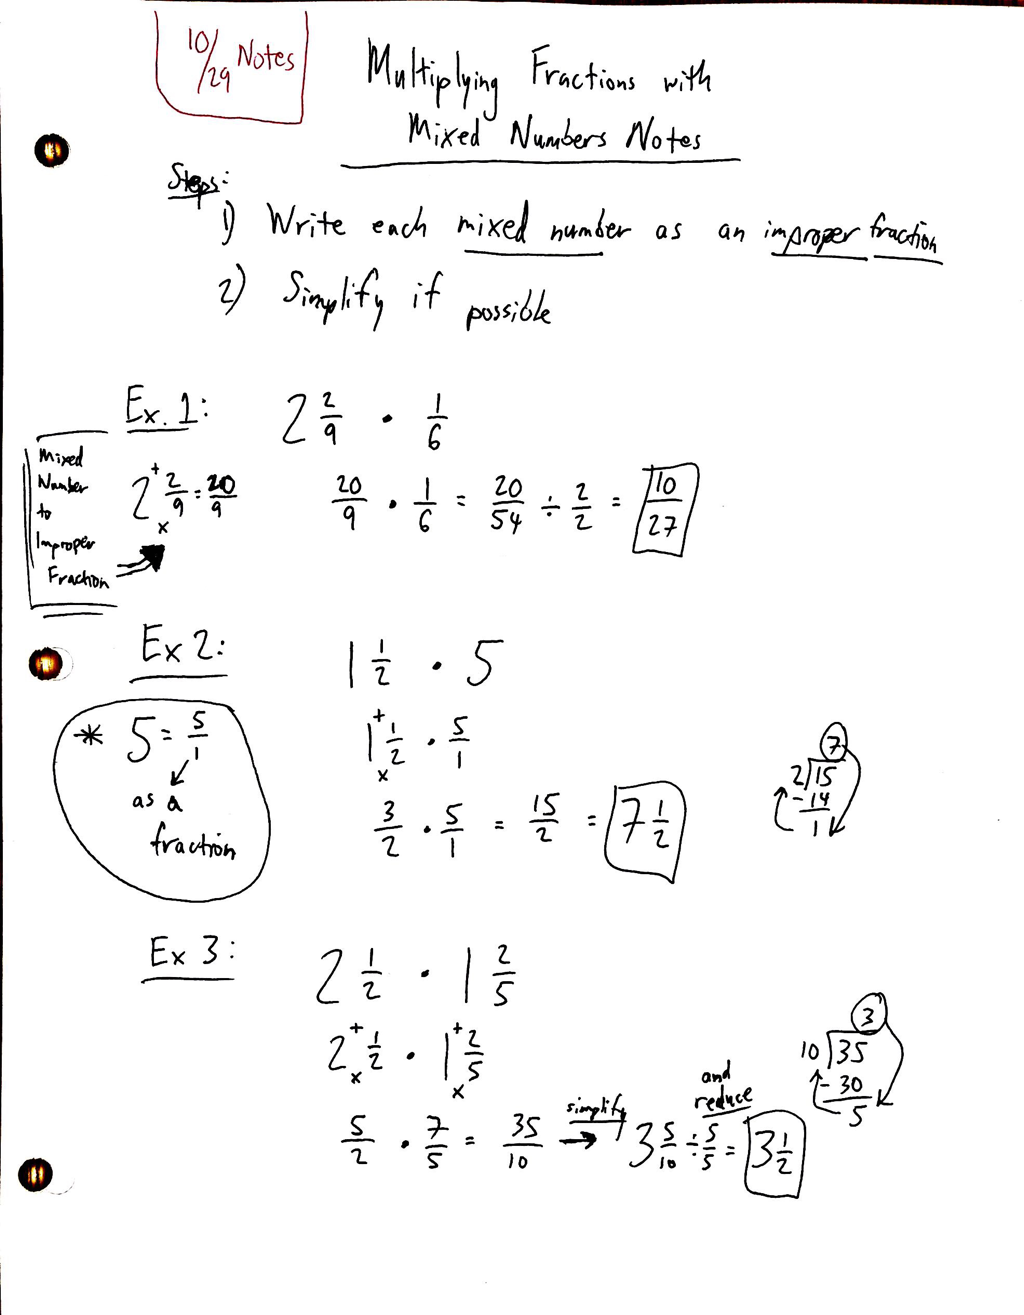 10/29 multiplying fractions with mixed numbers notes and homework